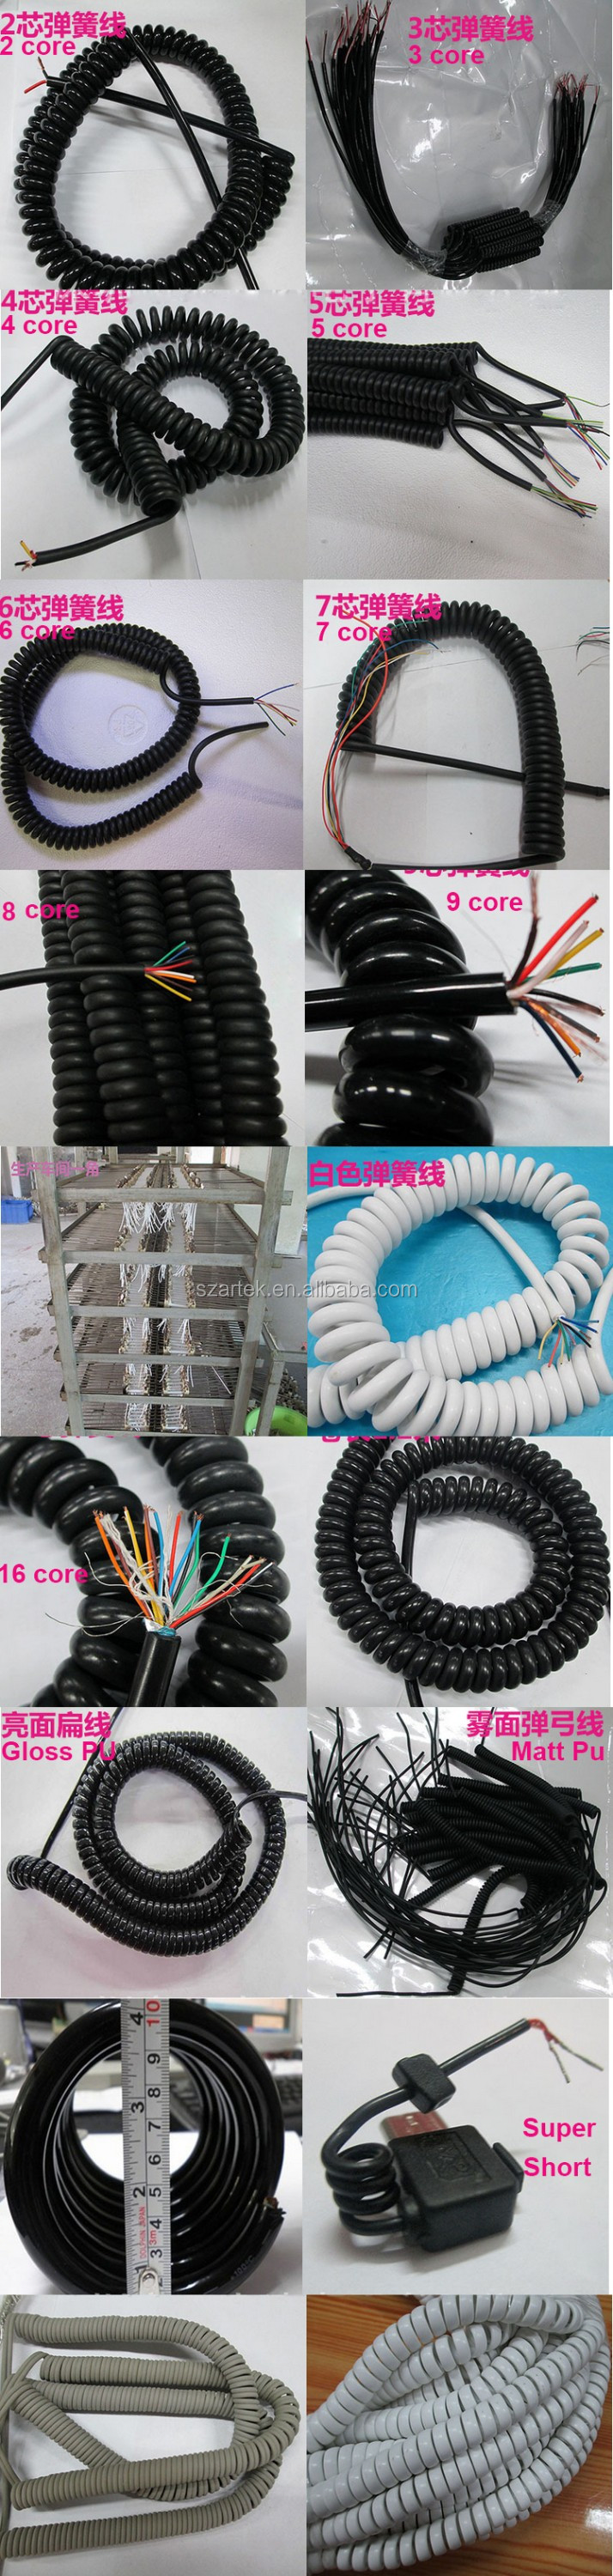 20 core shield ALMG braid and aluminum foil wrap PU sheath spiral cable